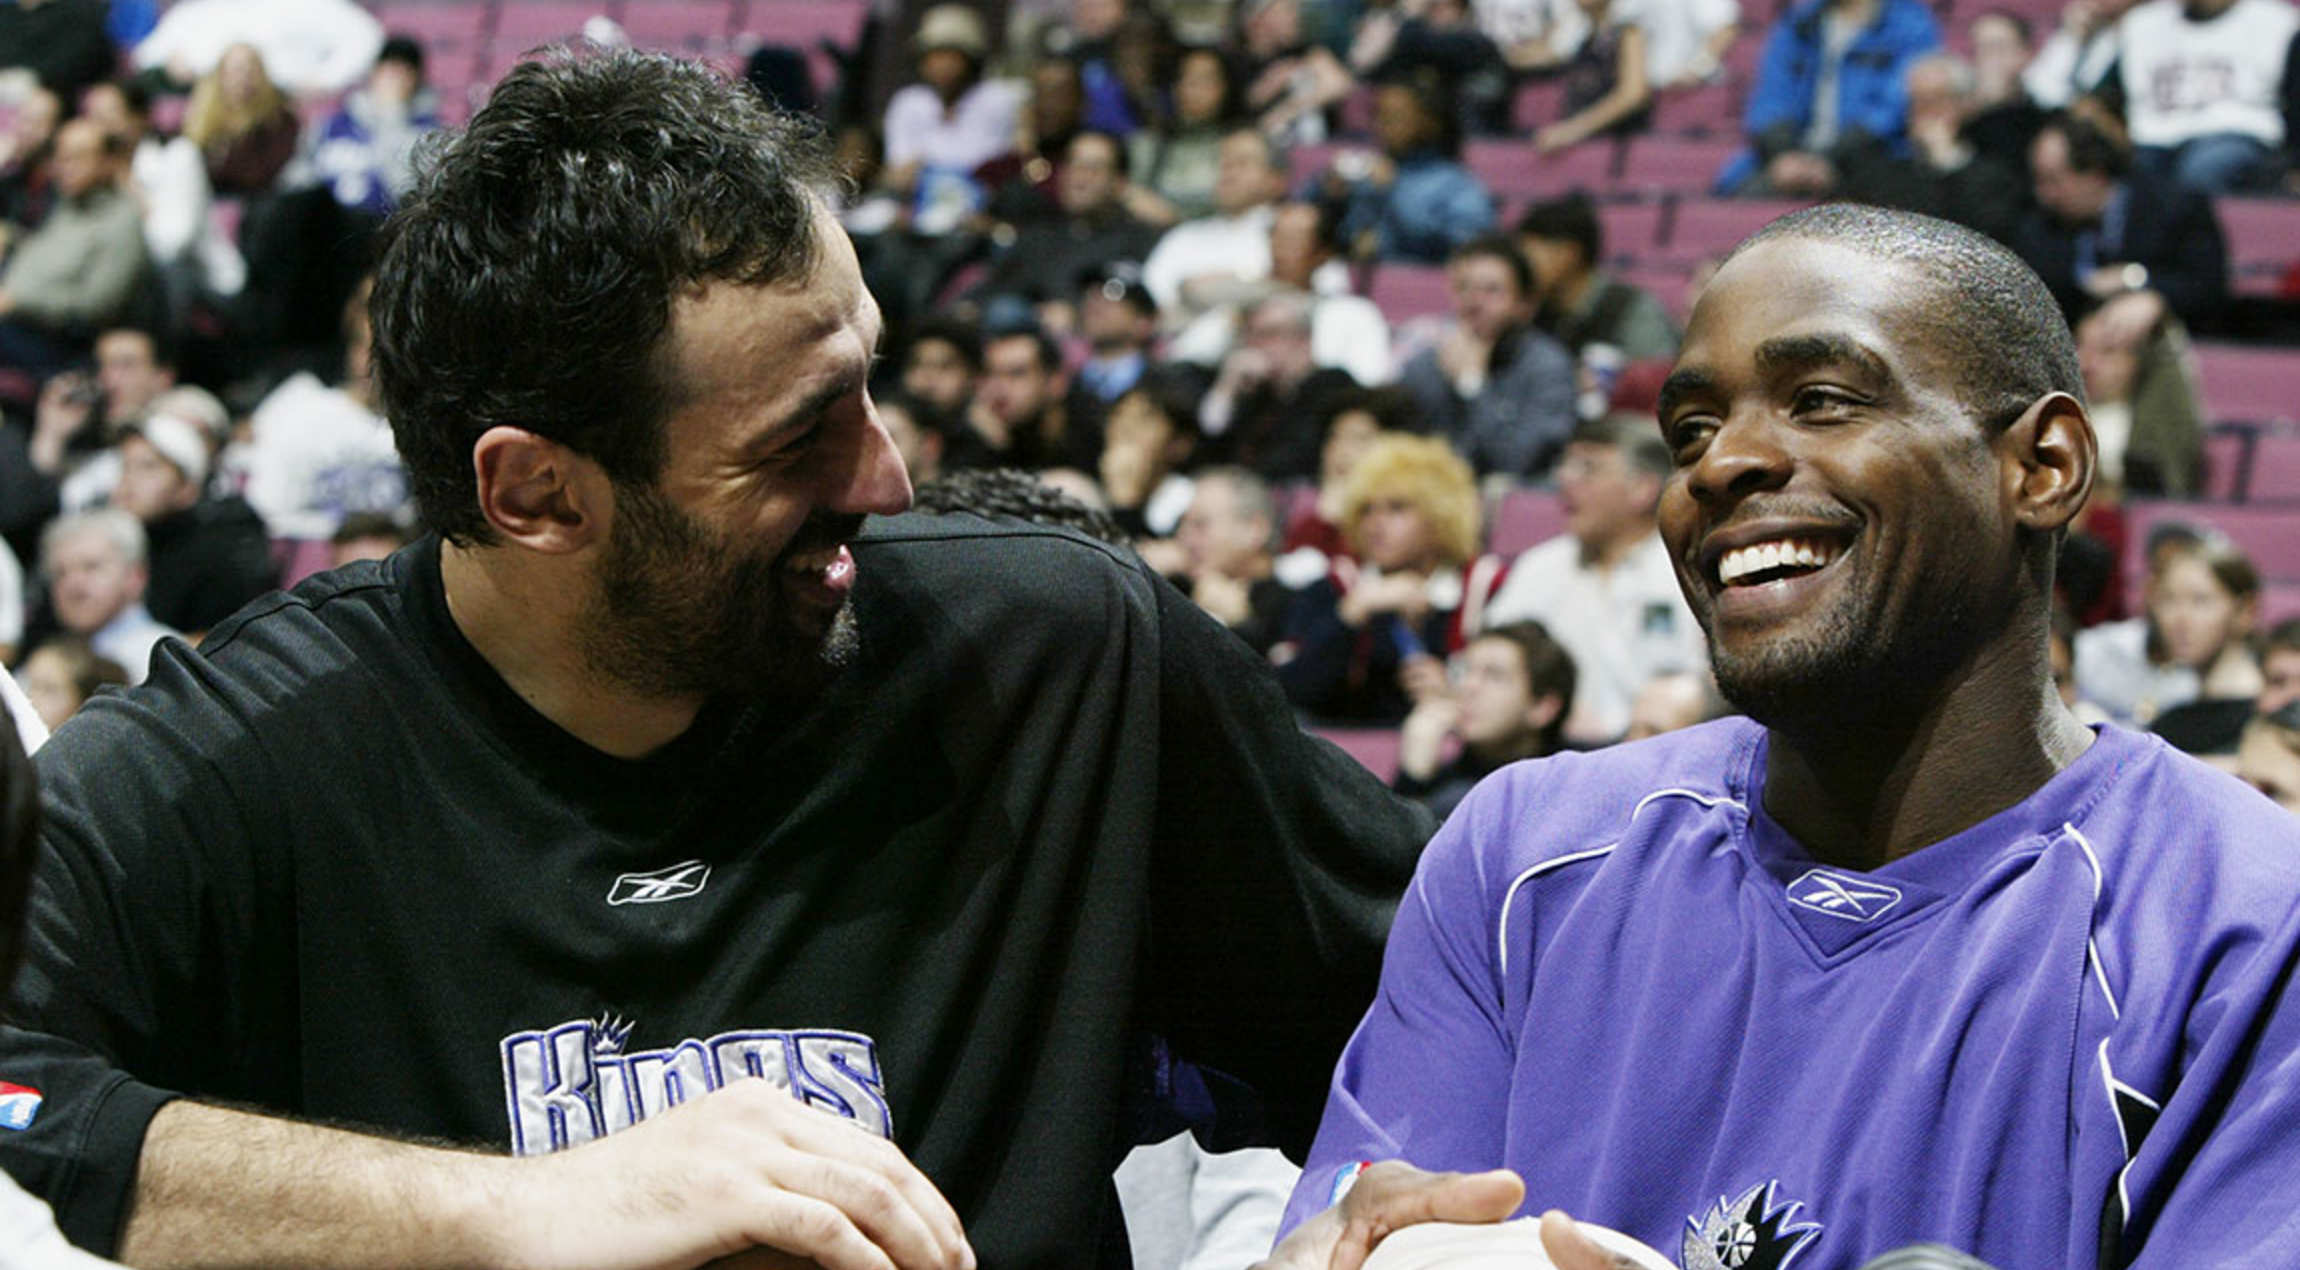 http://i.cdn.turner.com/drp/nba/kings/sites/default/files/styles/hi_res_full_width/public/vlade_webber_hof-main.jpg